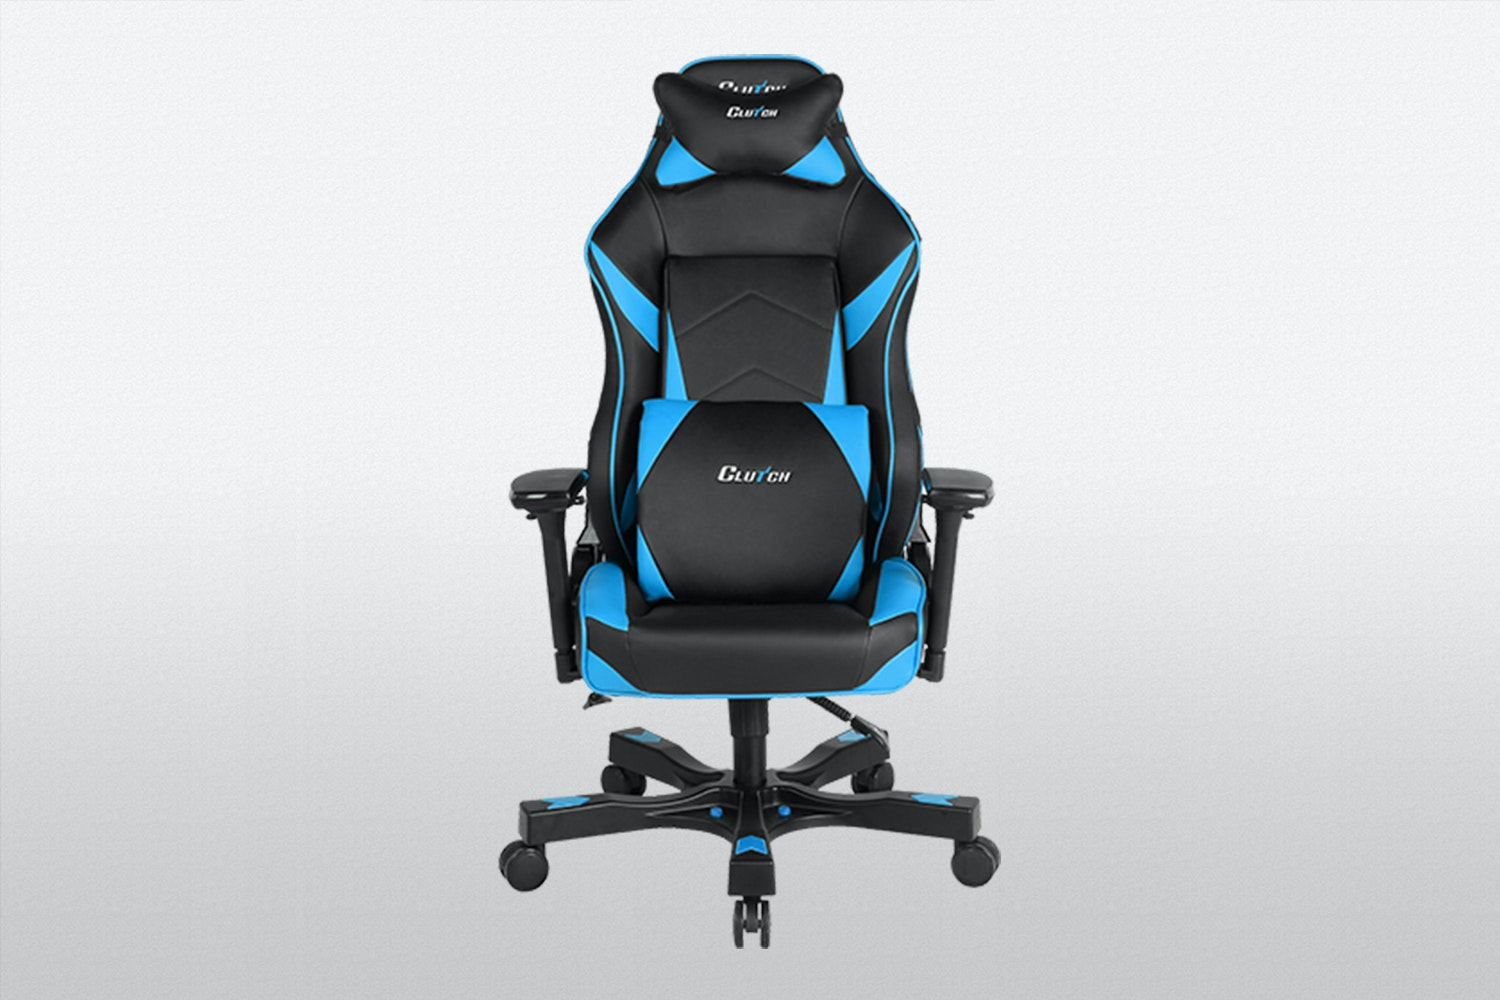 Clutch Shift Series Gaming Chairs